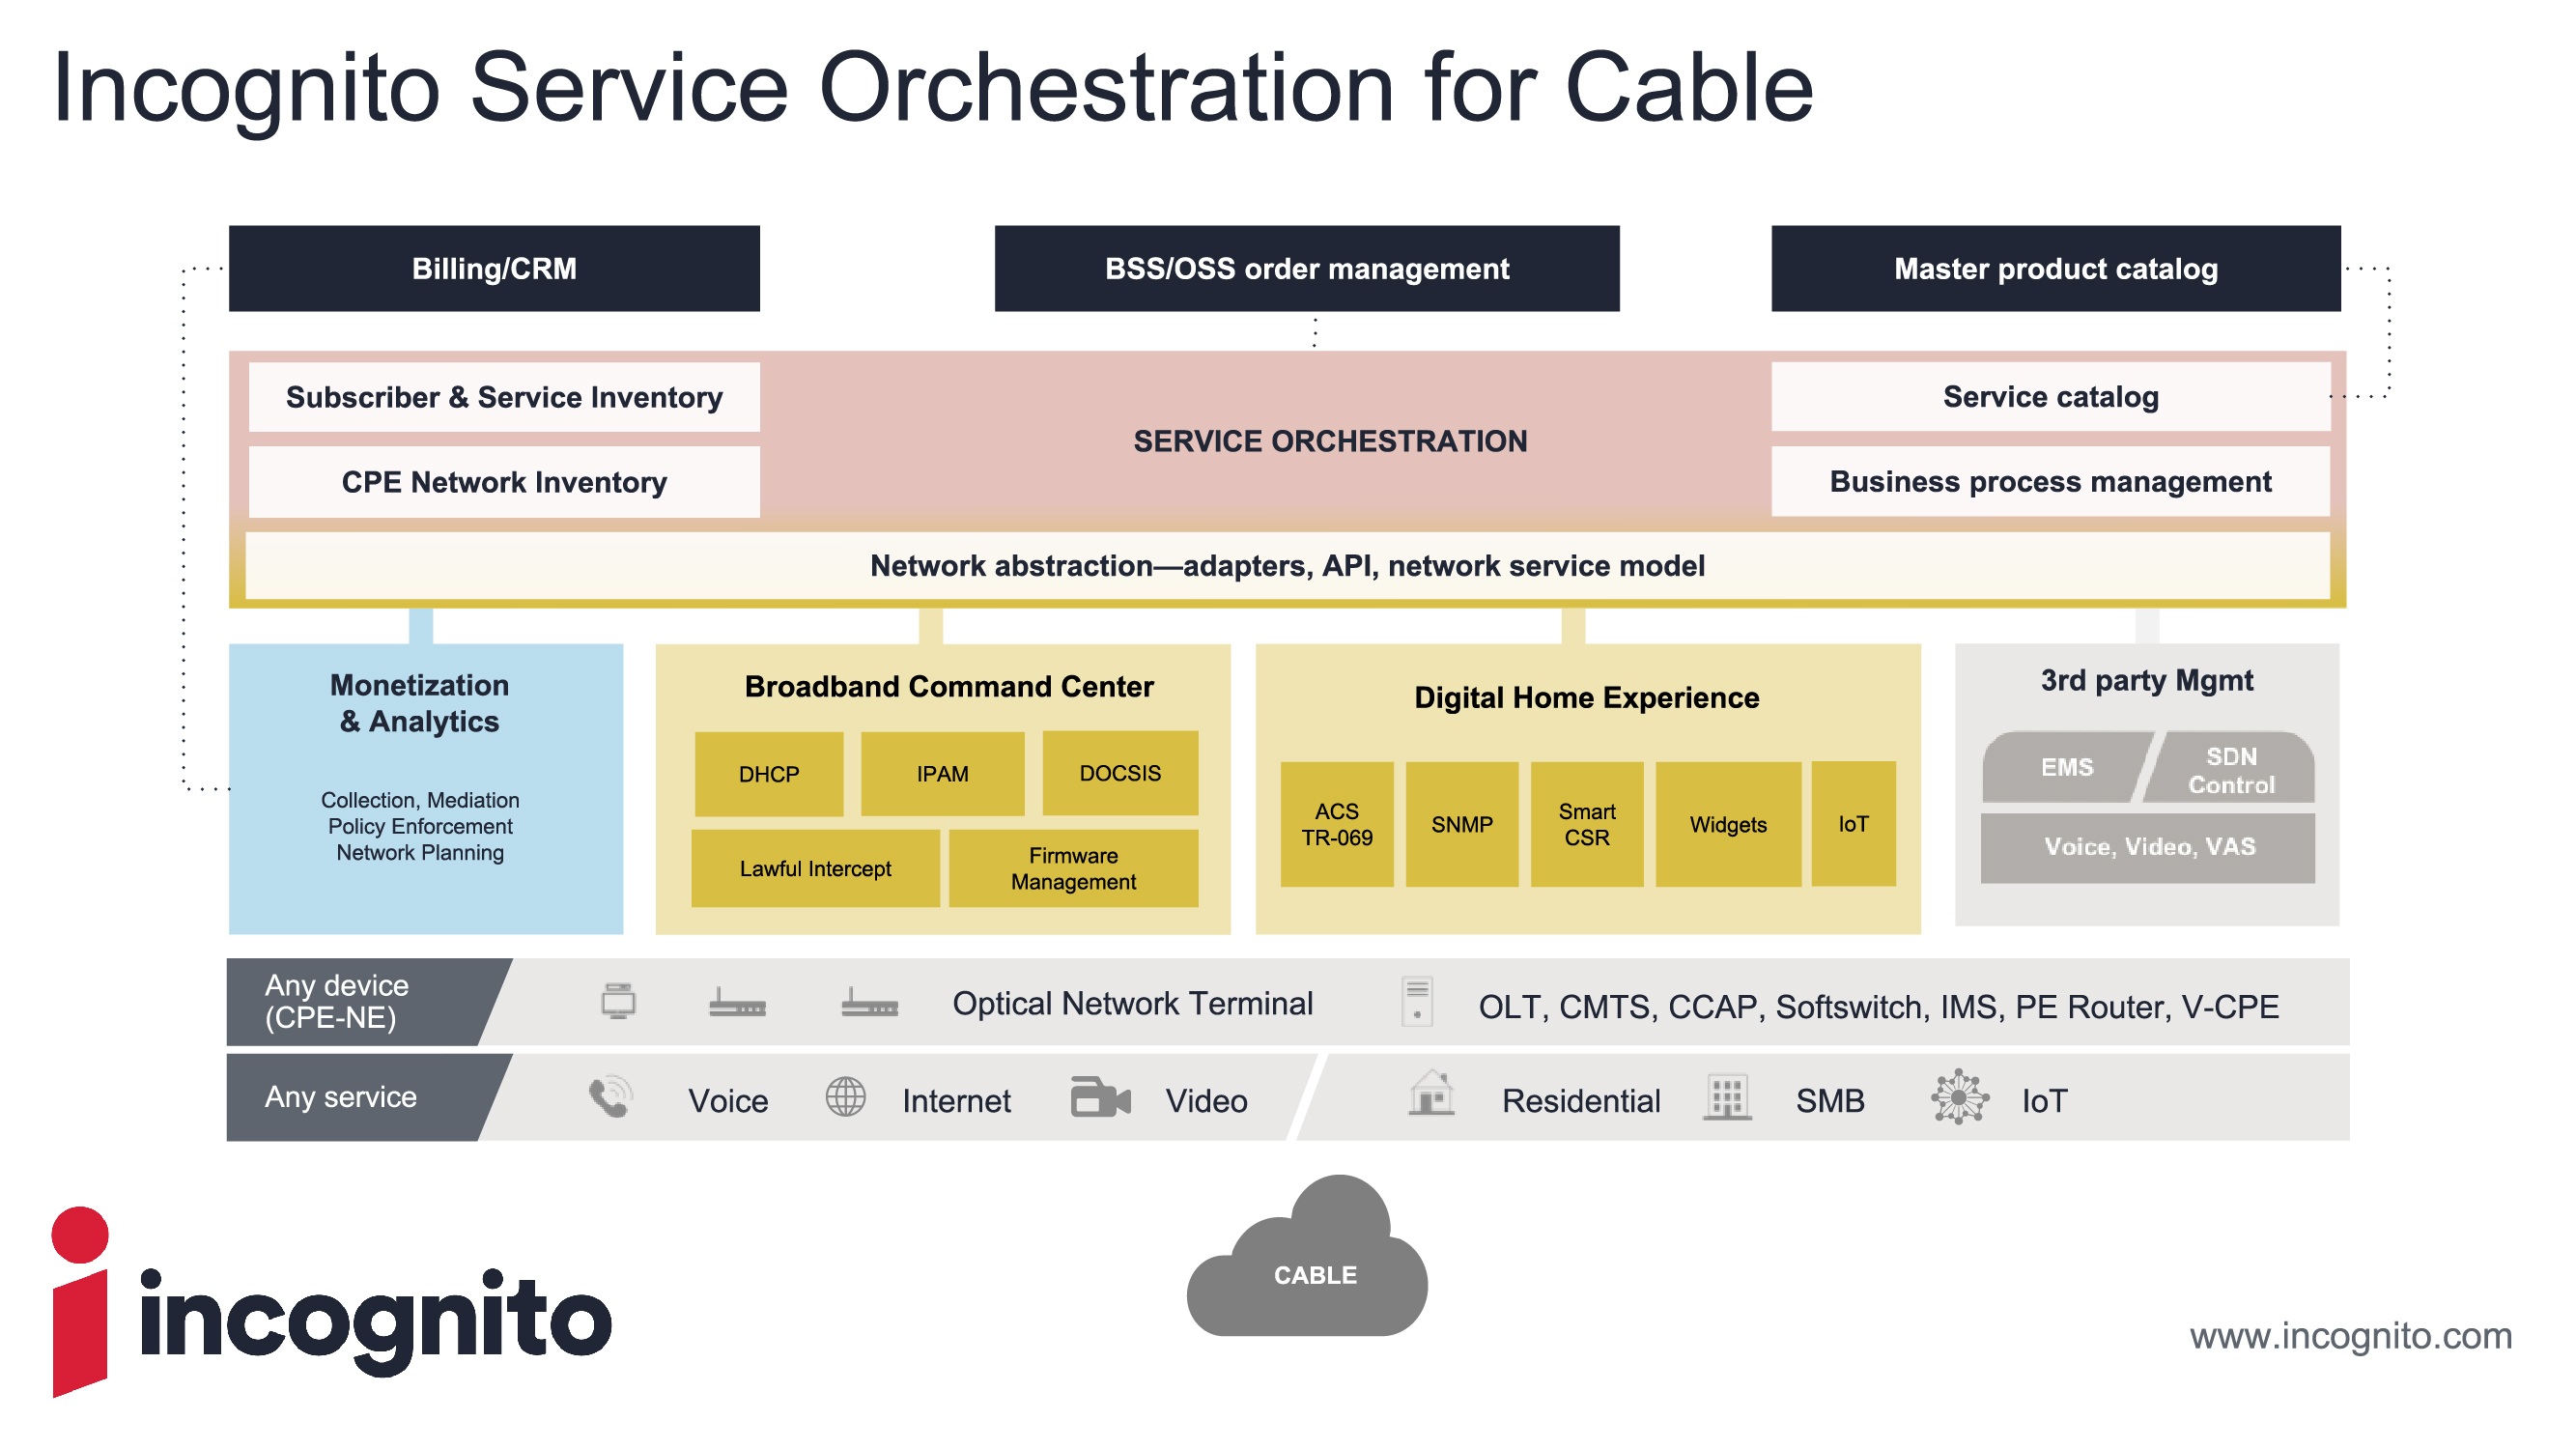 incognito service orchestration for cable-01